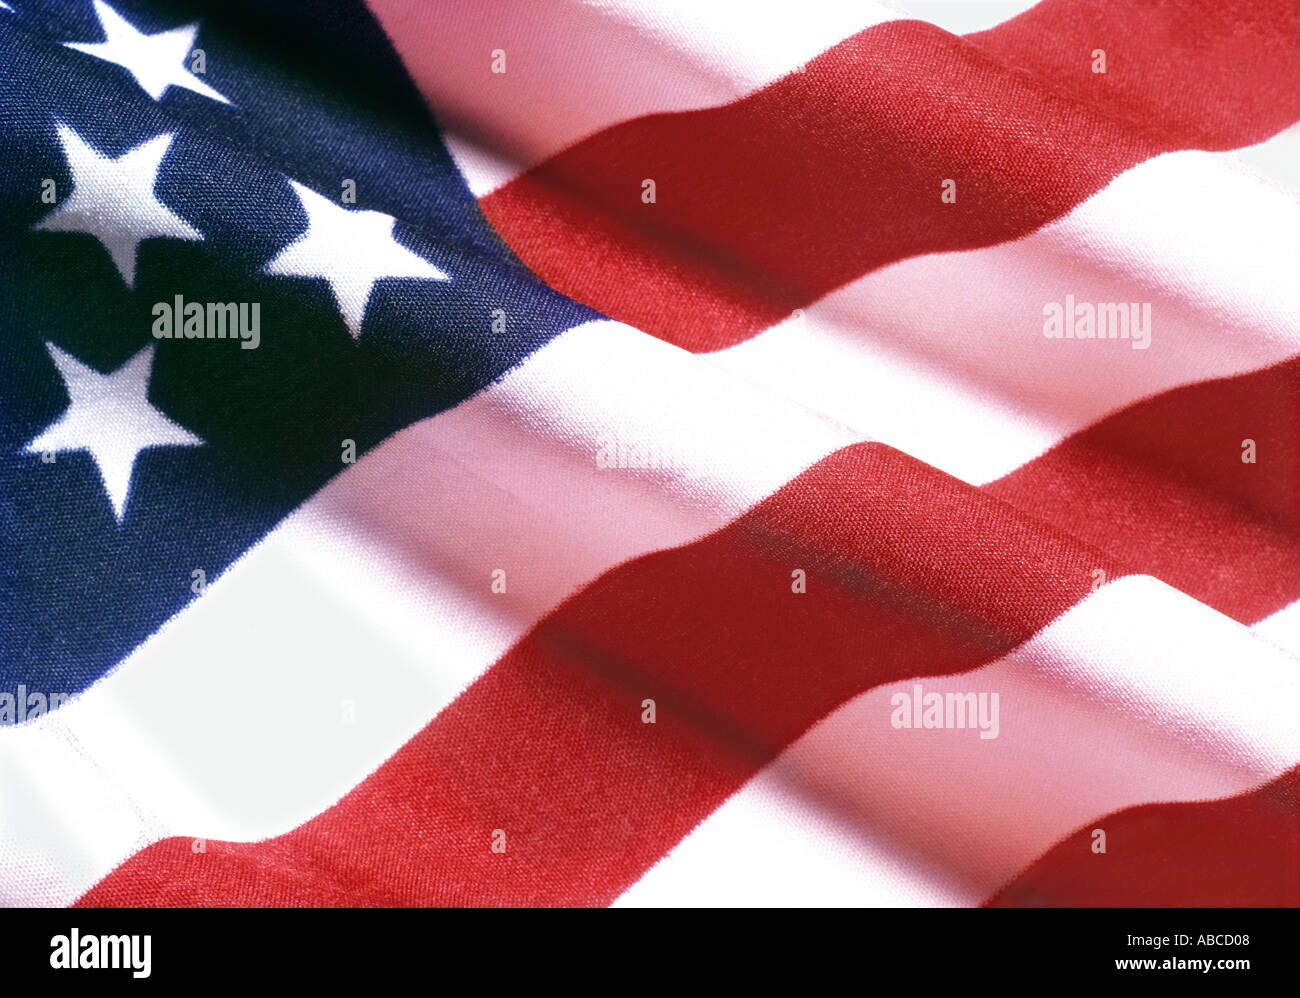 US flag - Stock Image